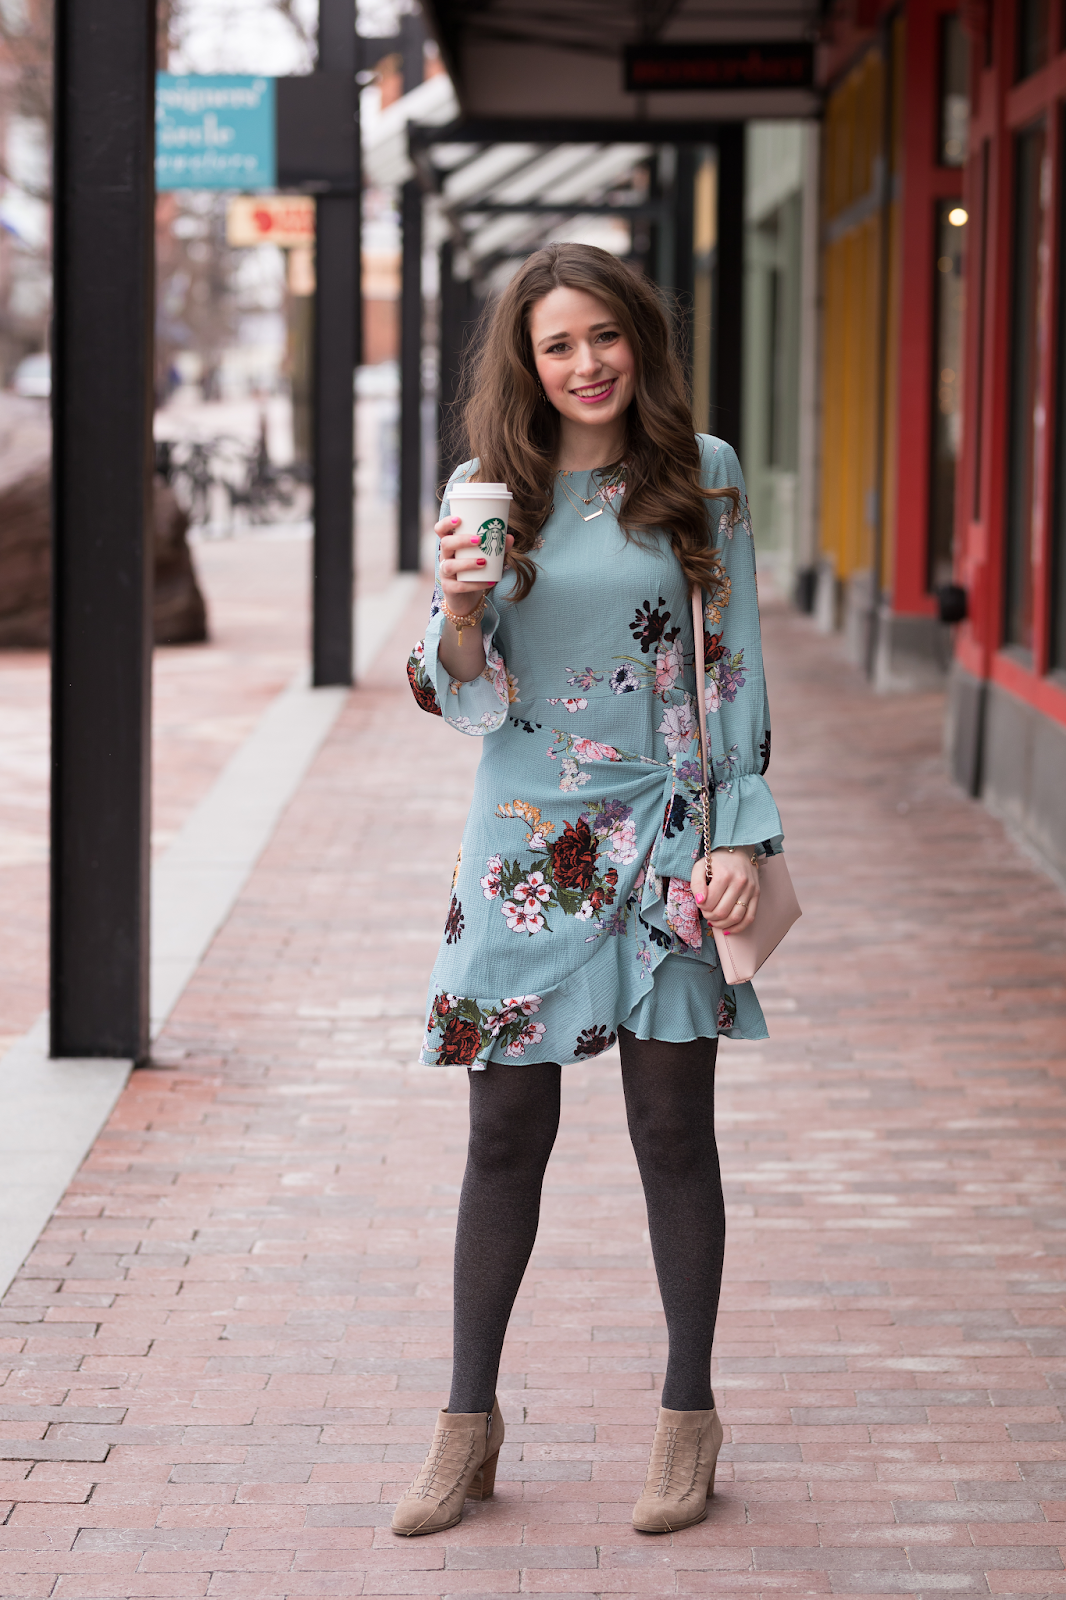 Cold Weather Easter Outfit.  Cold spring outfit, Spring fashion